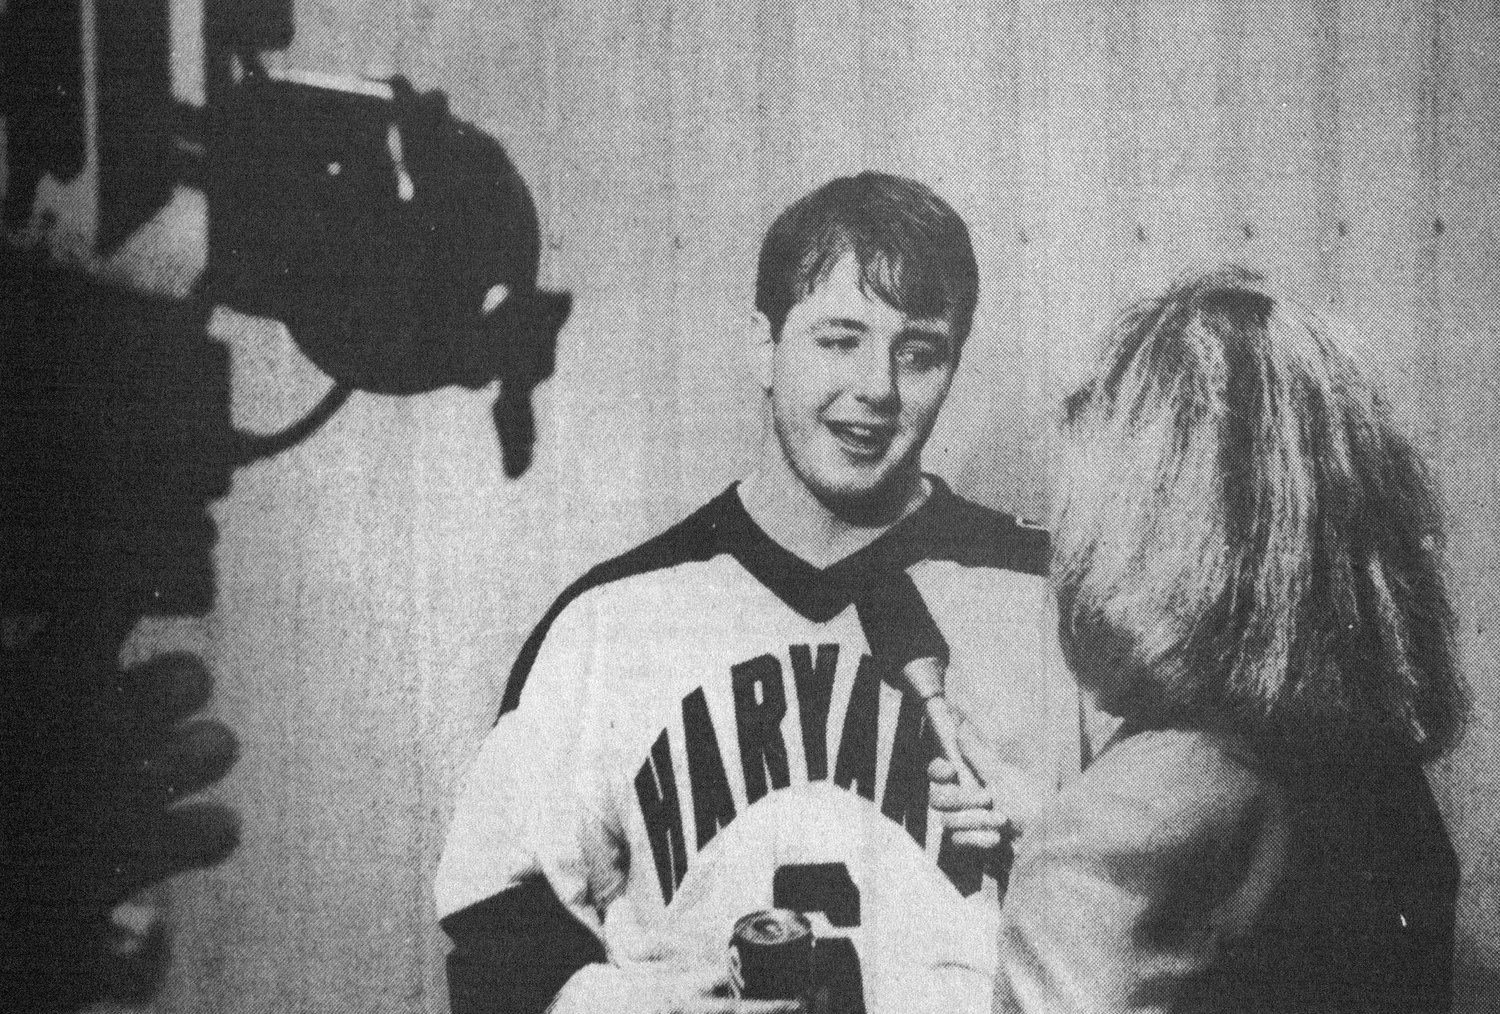 Harvard Hockey 1989: A Championship in Perspective | Sports